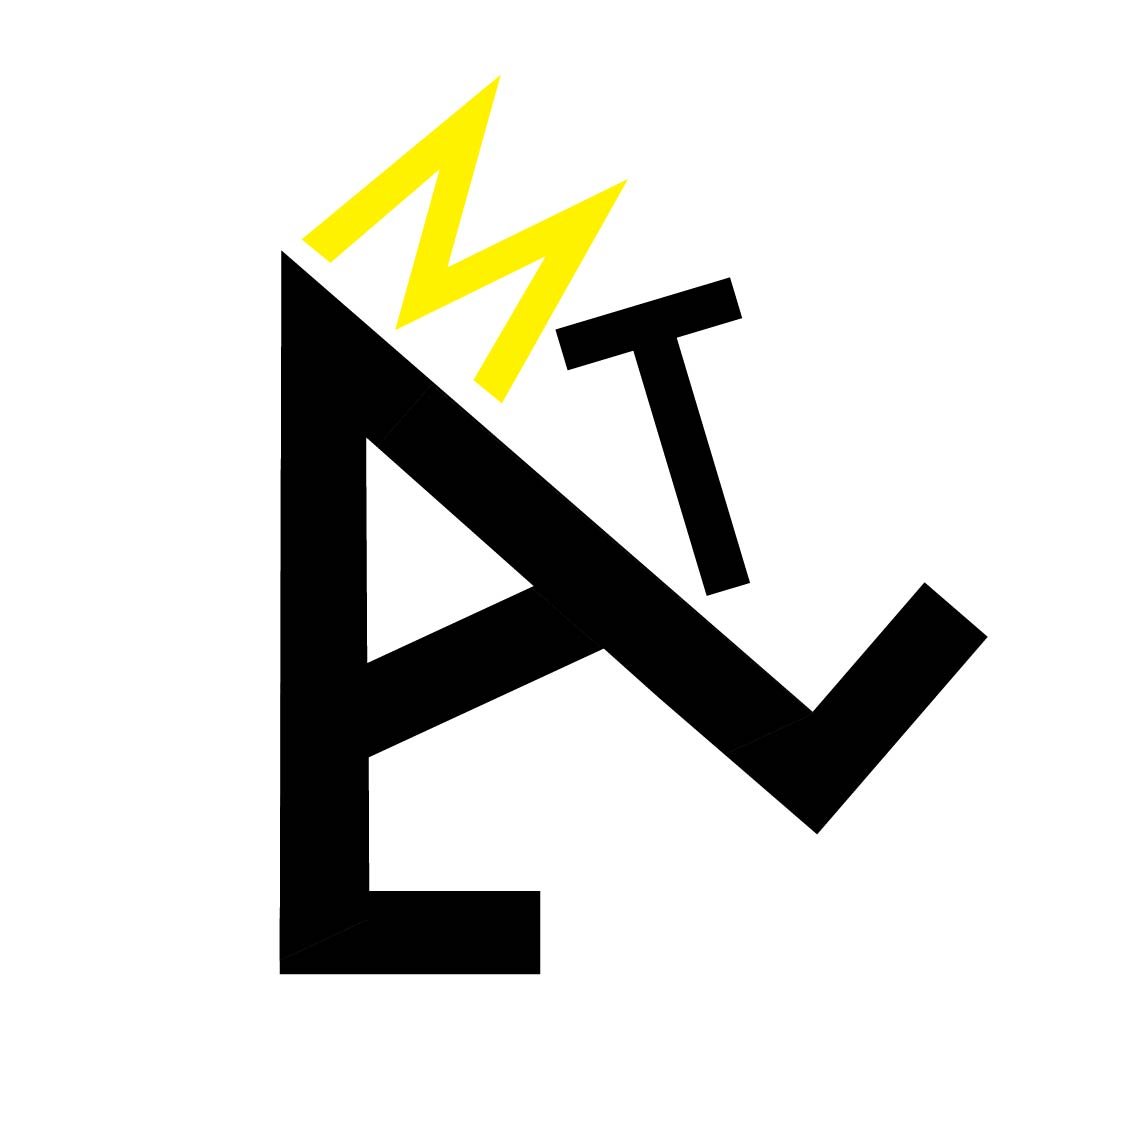 Louis-Martin Tremblay